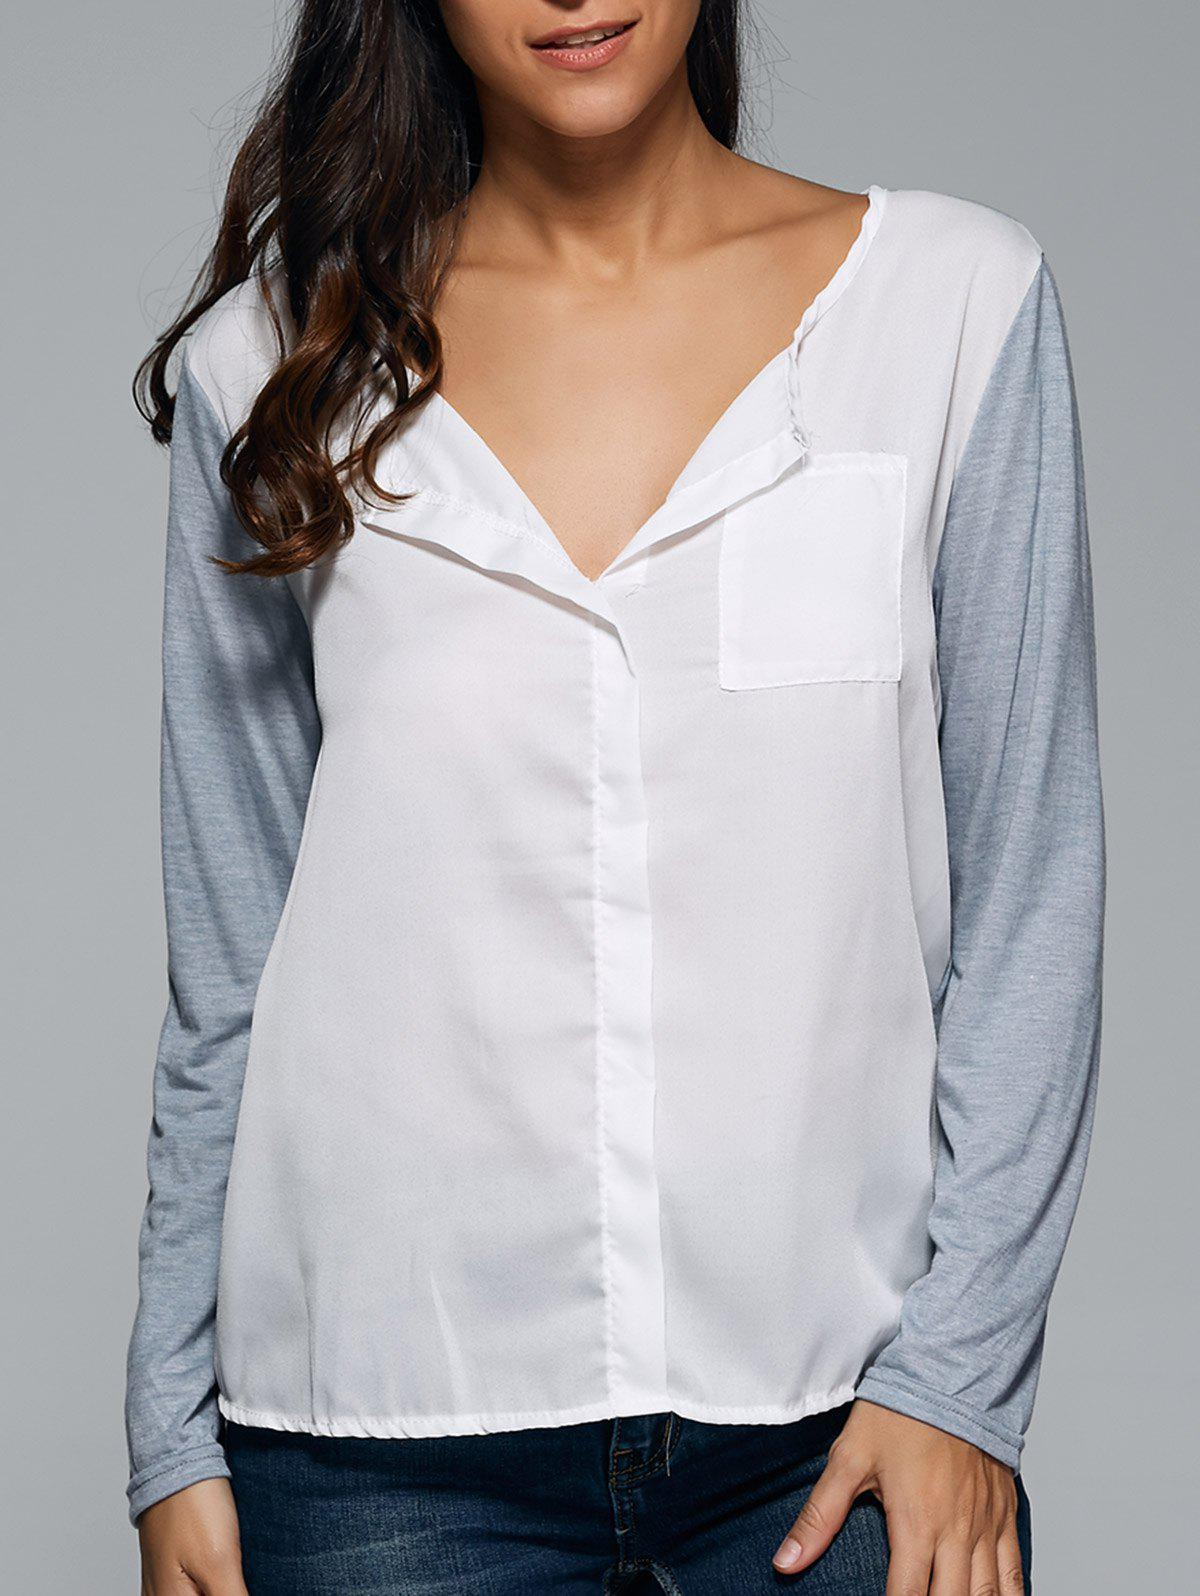 Loose-Fitting Contrast Color BlouseWomen<br><br><br>Size: 5XL<br>Color: WHITE